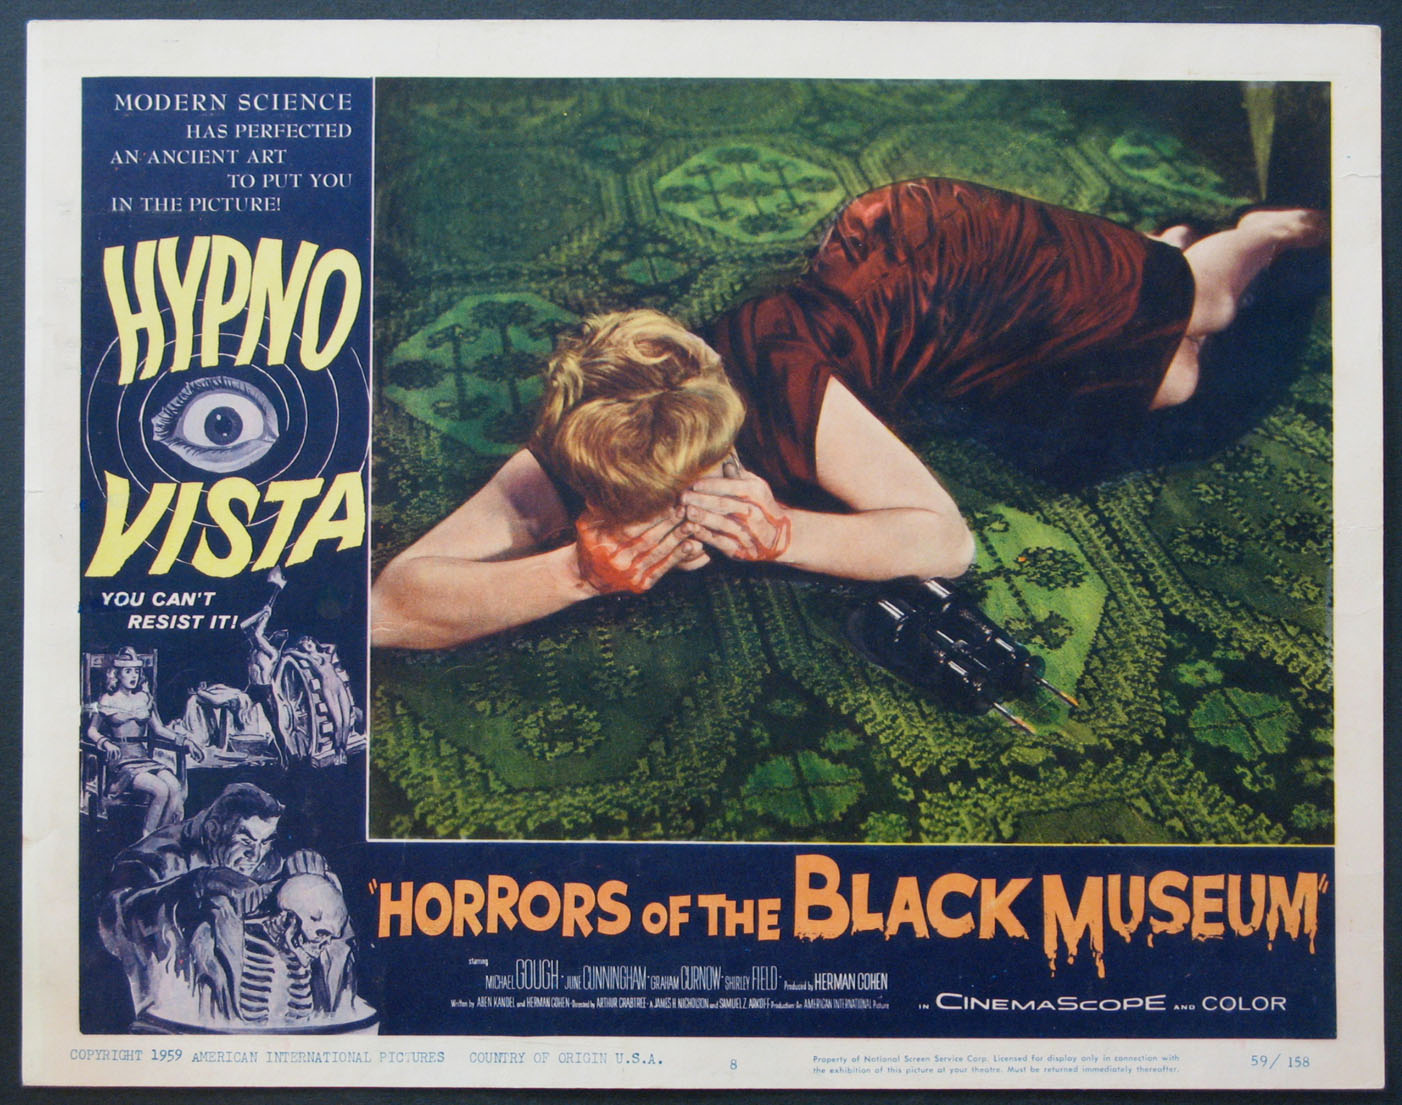 HORRORS OF THE BLACK MUSEUM @ FilmPosters.com